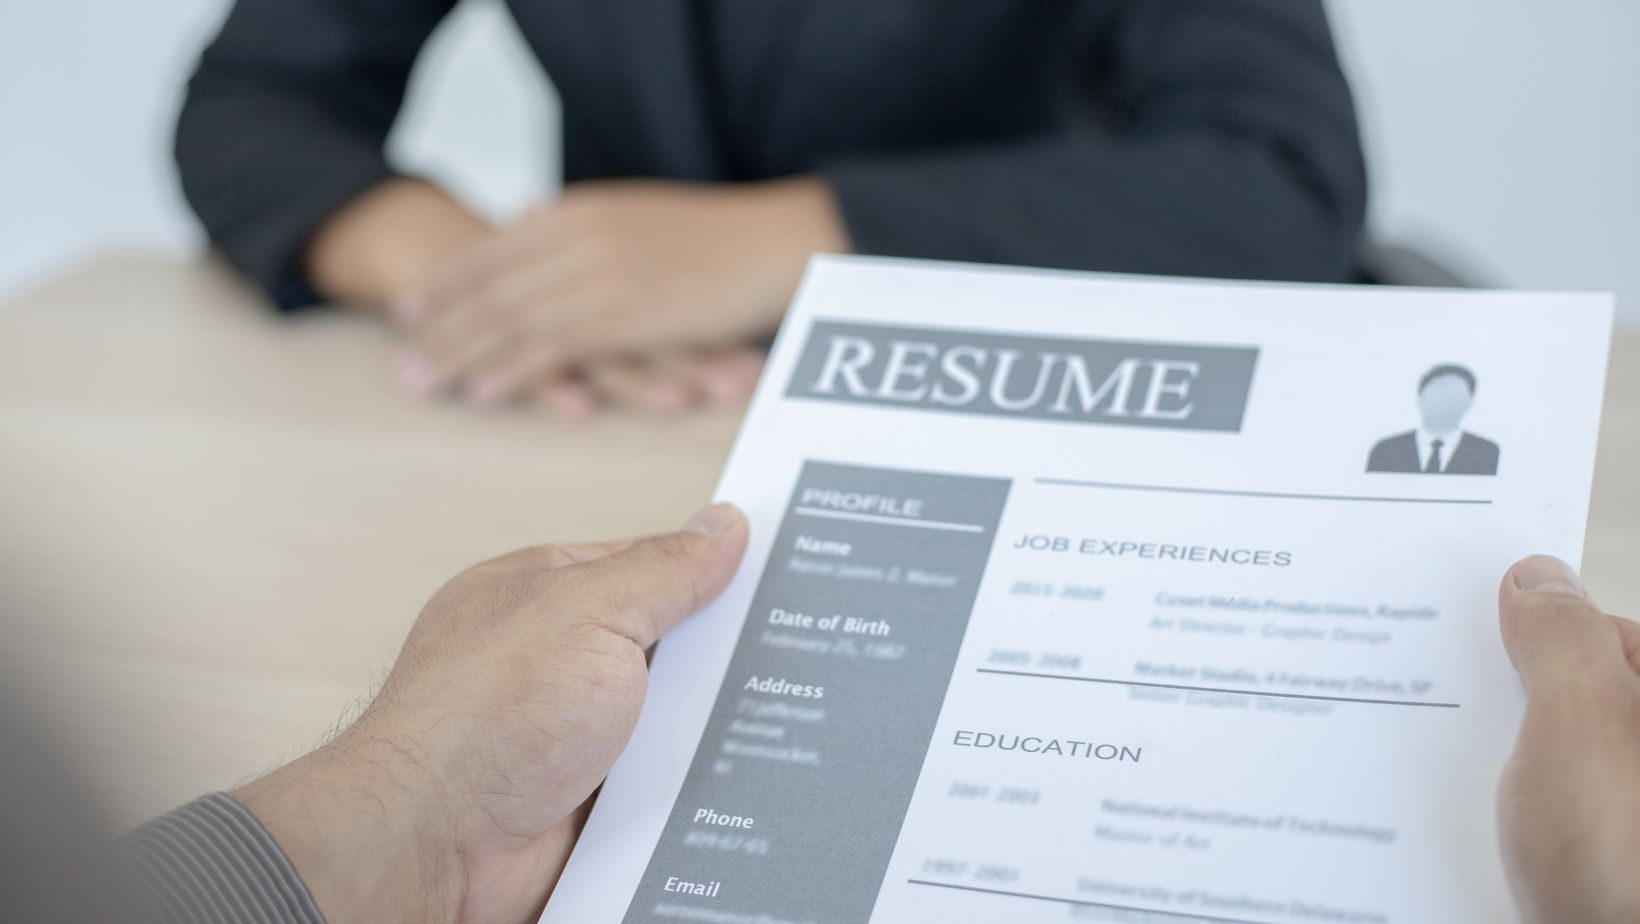 Updating your resume can help you land your dream RV job.